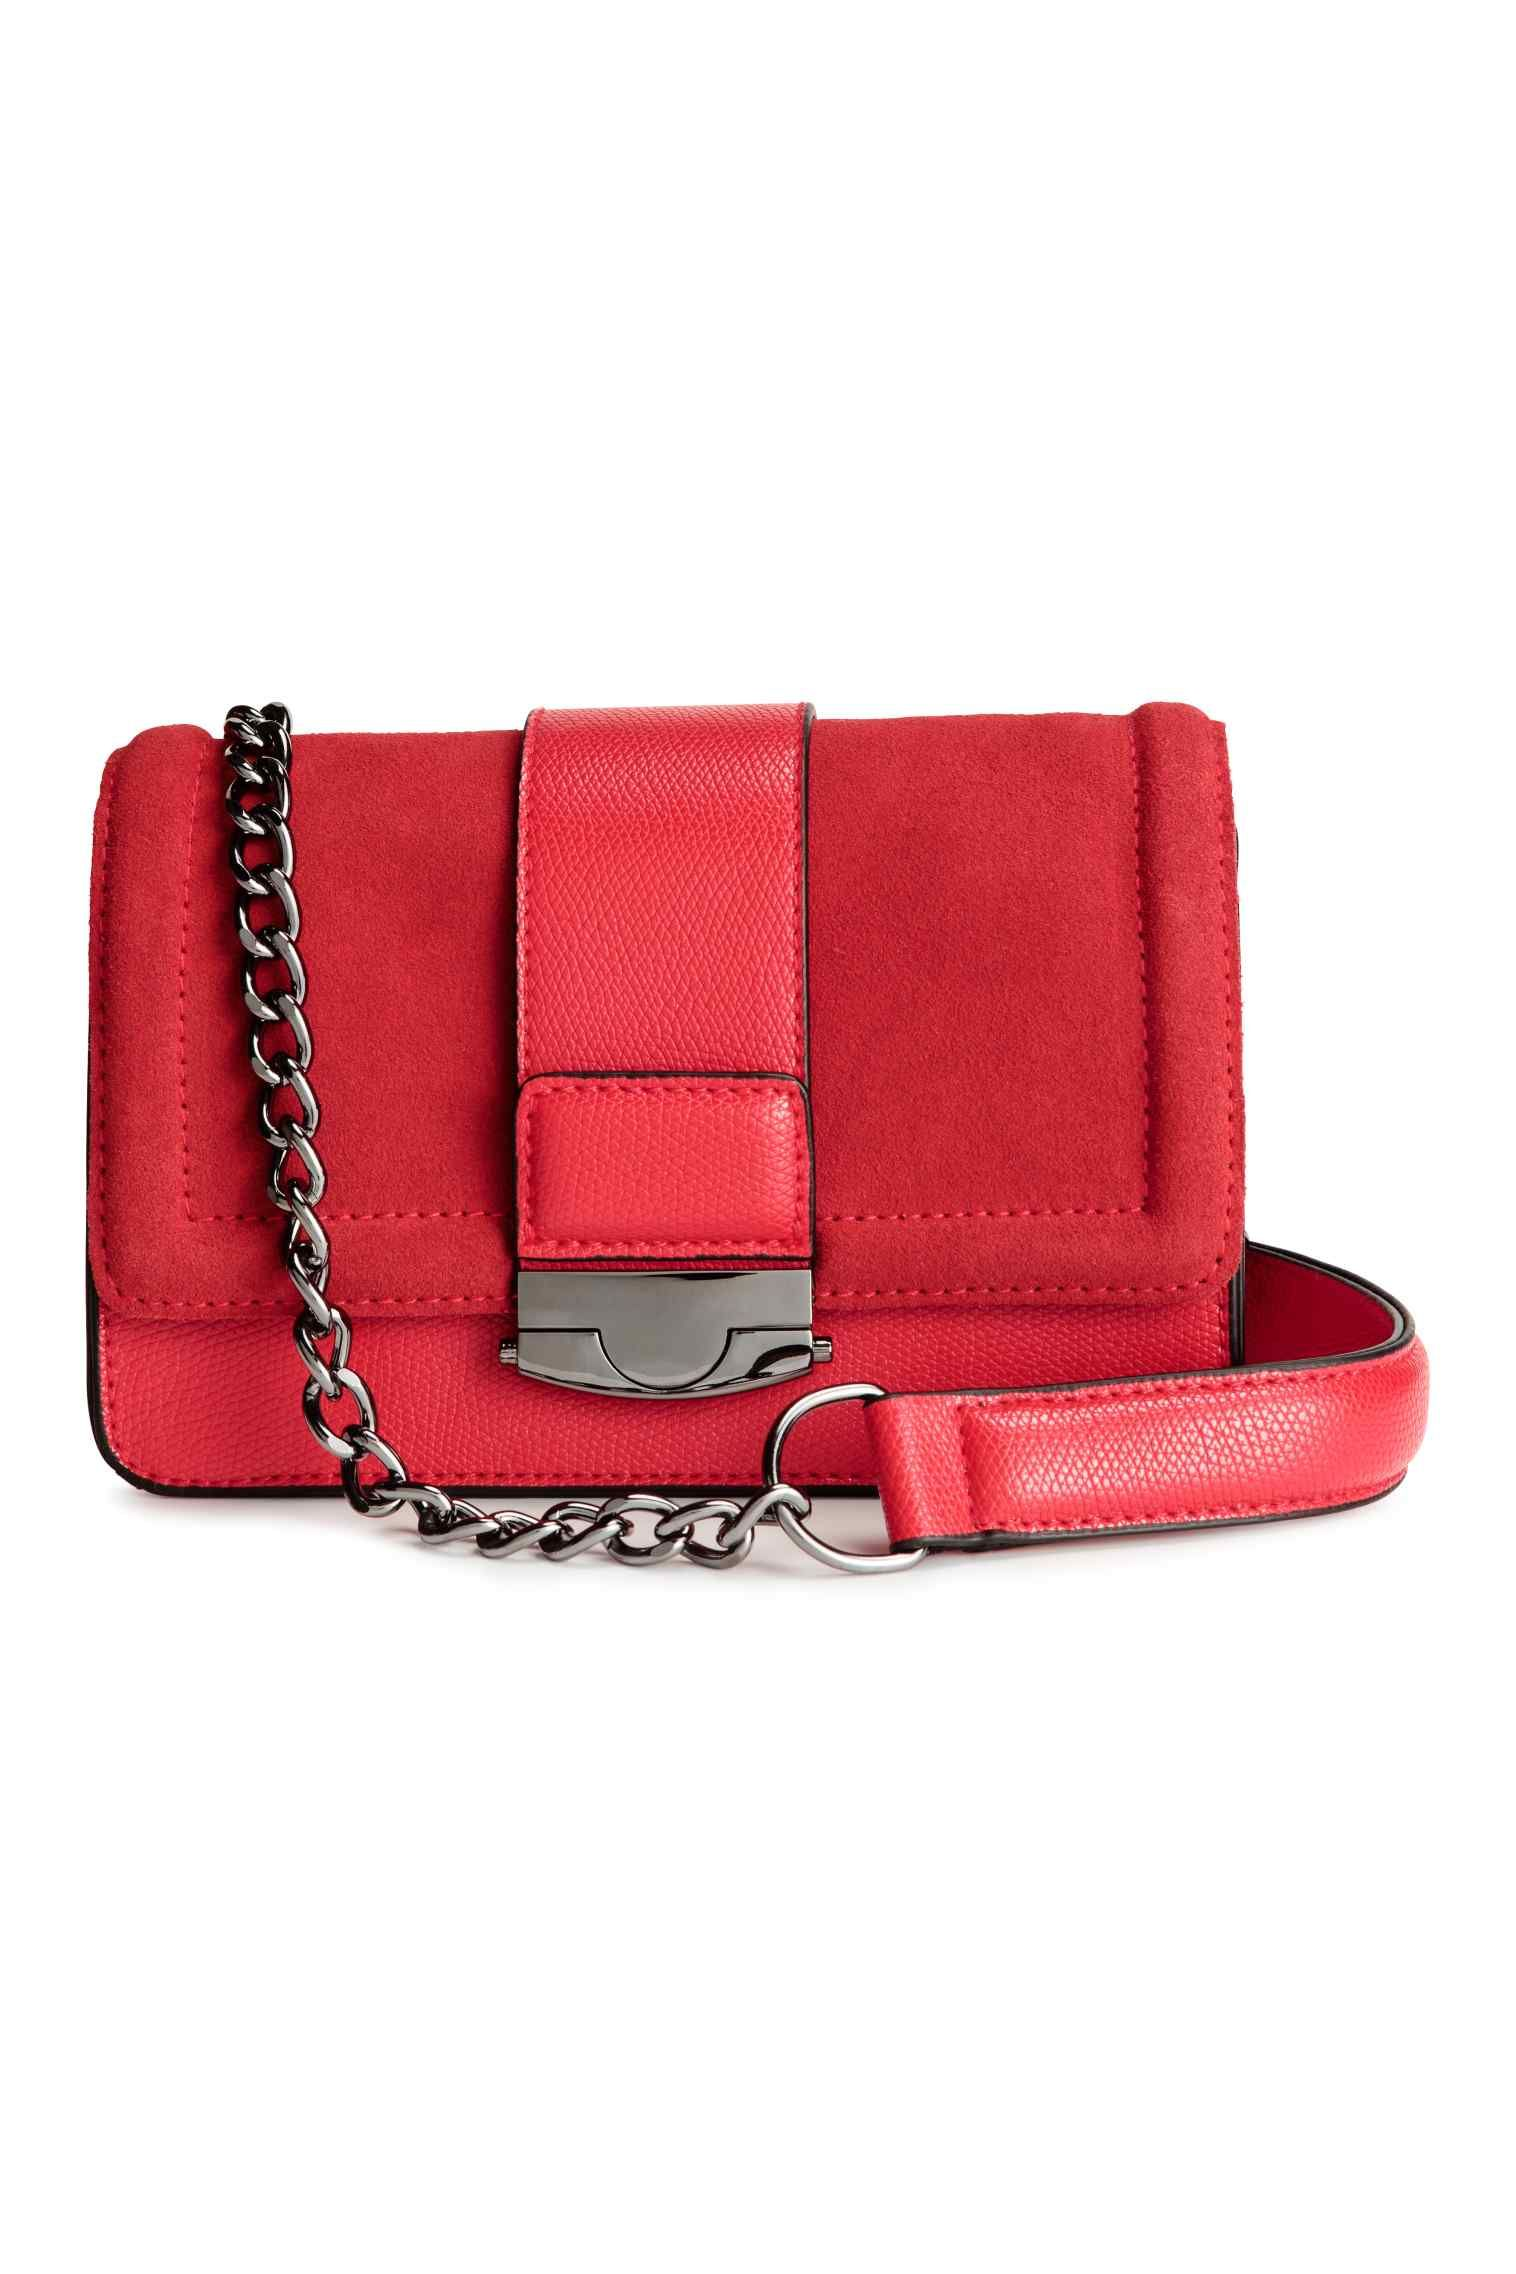 """<p>If you want to wear this bag all day and night, simply tuck the strap inside to transform the crossbody bag into a clutch.</p><p><a href=""""http://www2.hm.com/en_gb/productpage.0387451001.html#"""" target=""""_blank"""">Bag with suede details, £29.99, H&amp&#x3B;M</a></p>"""